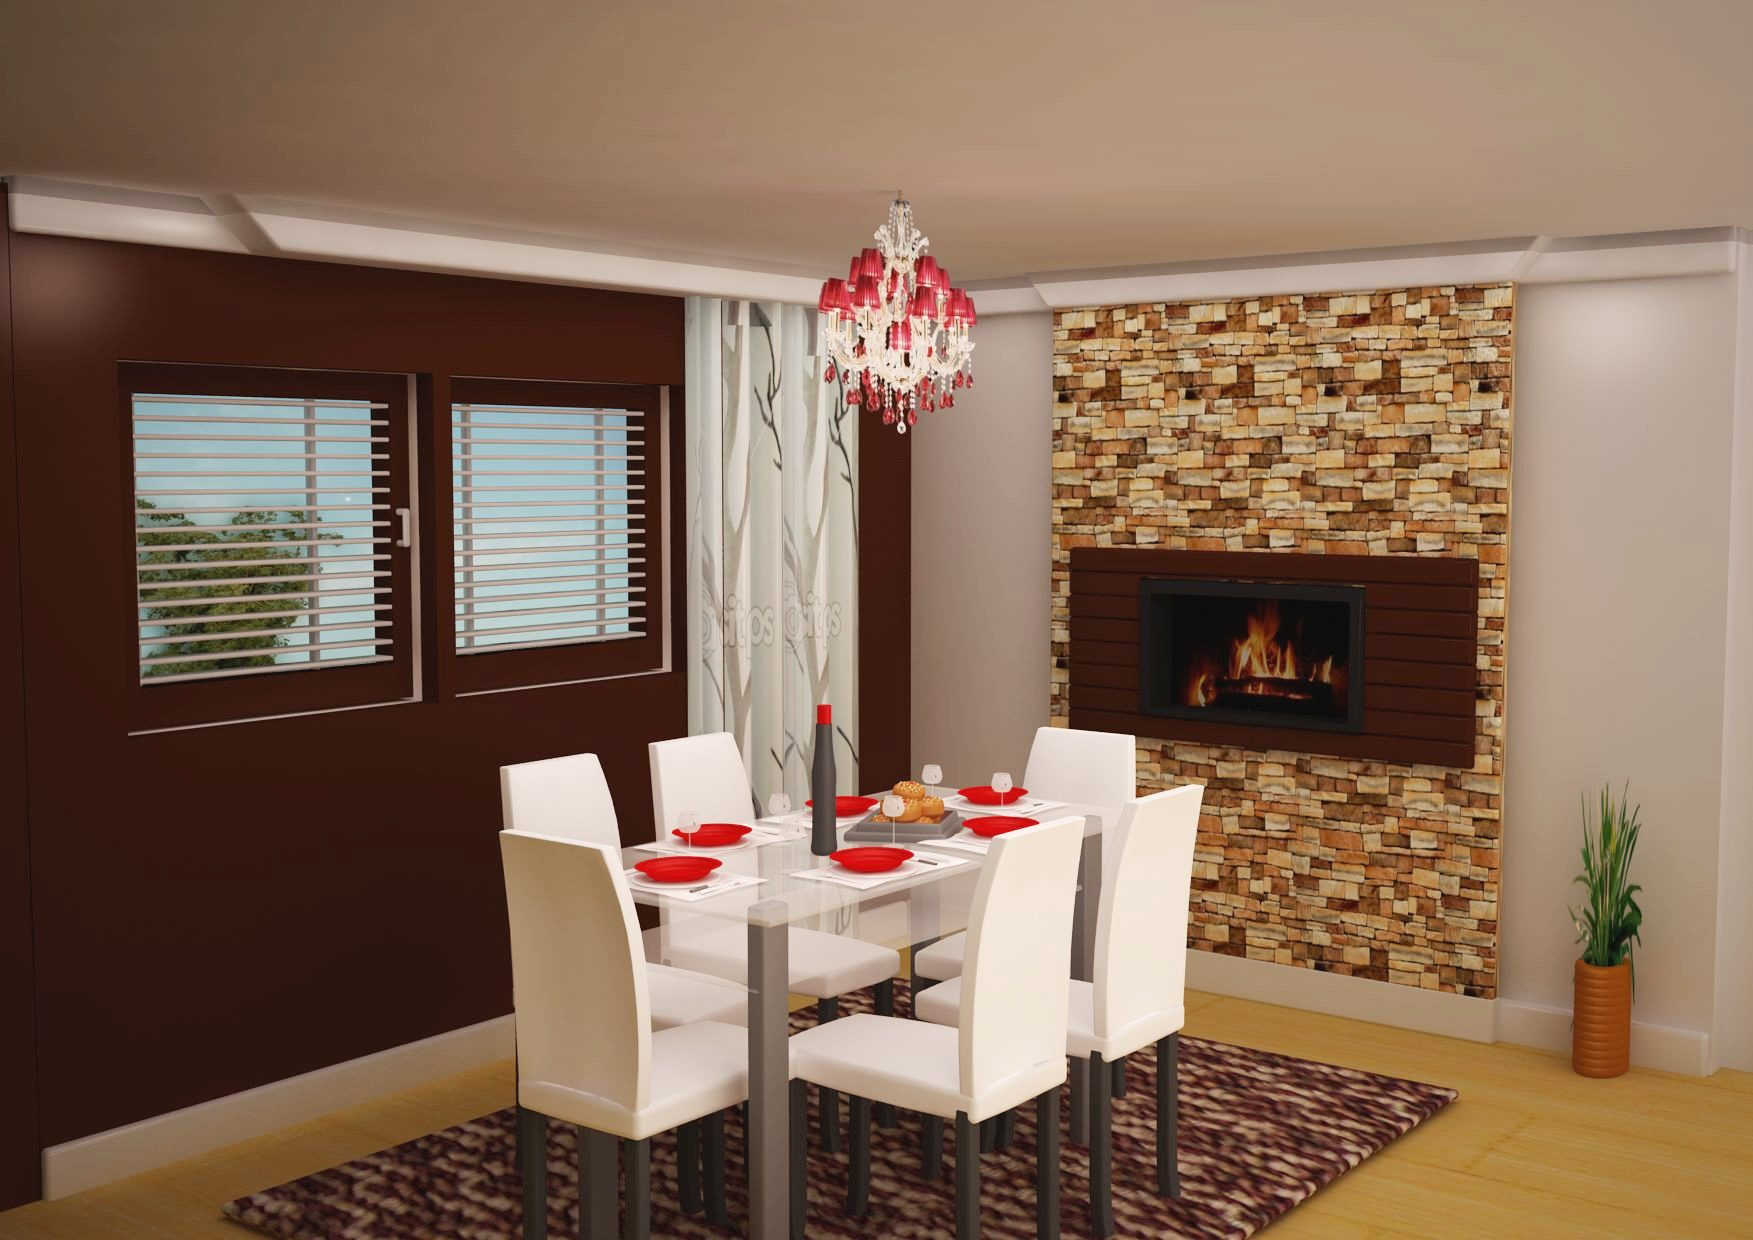 Sophisticated dining area with inbuilt fire place and brick wall